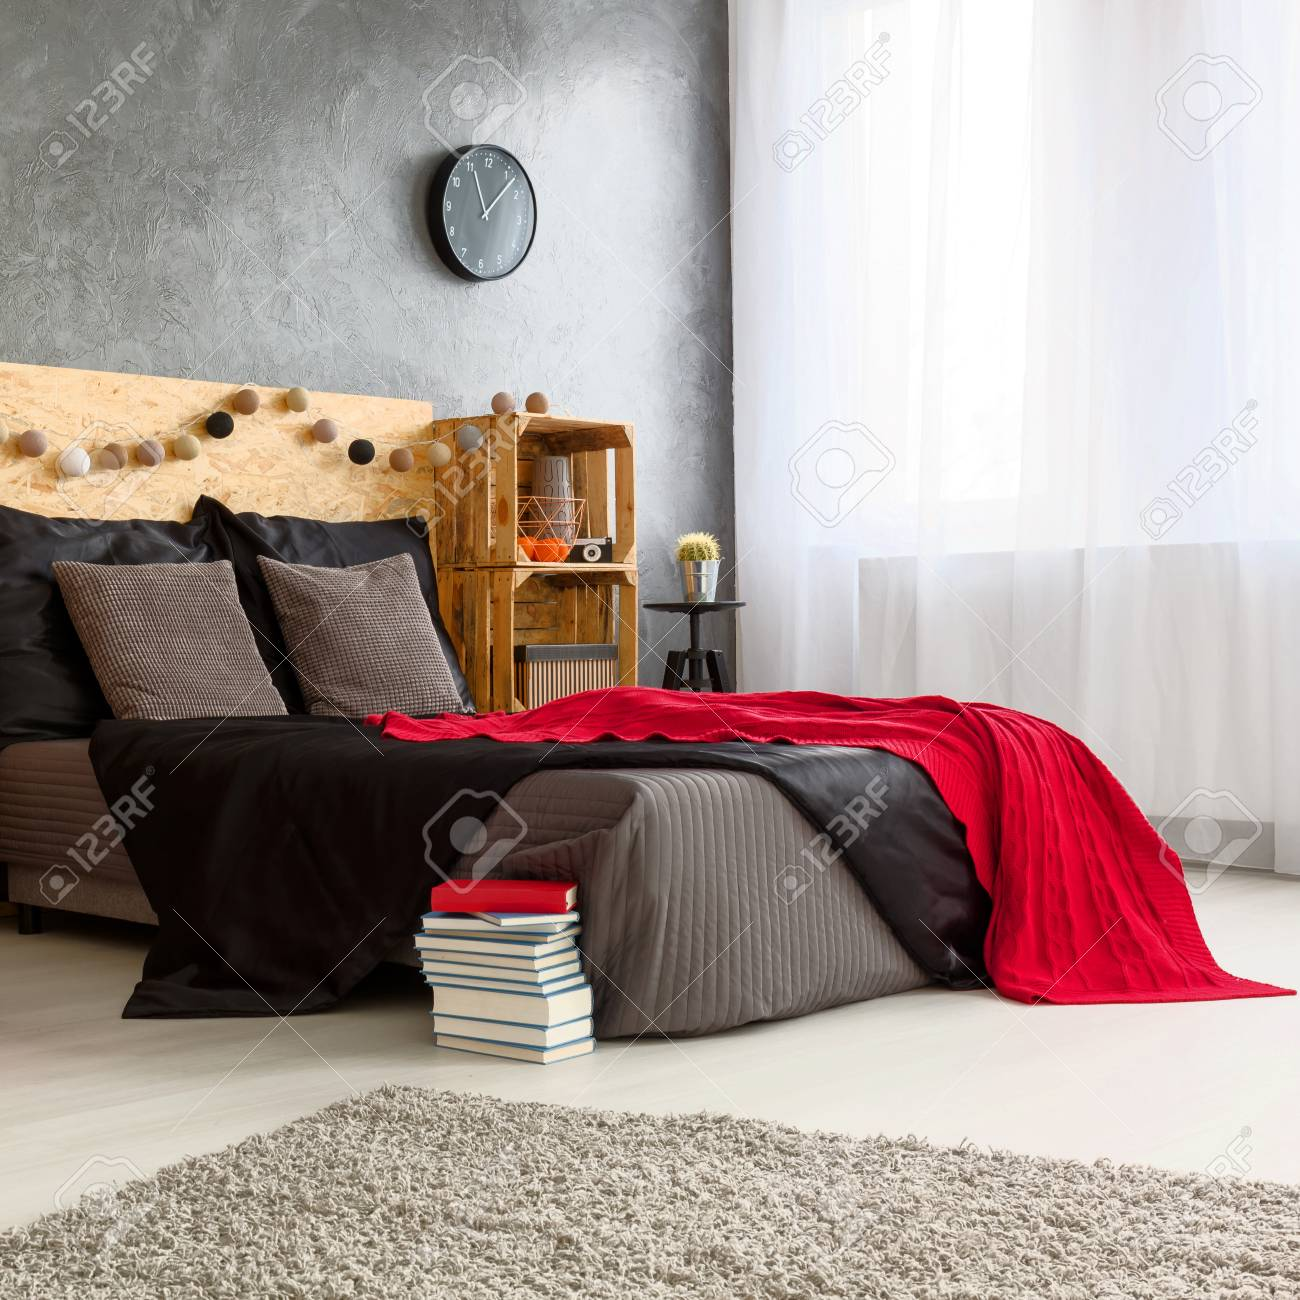 Schlafzimmer Design Rot Stock Photo